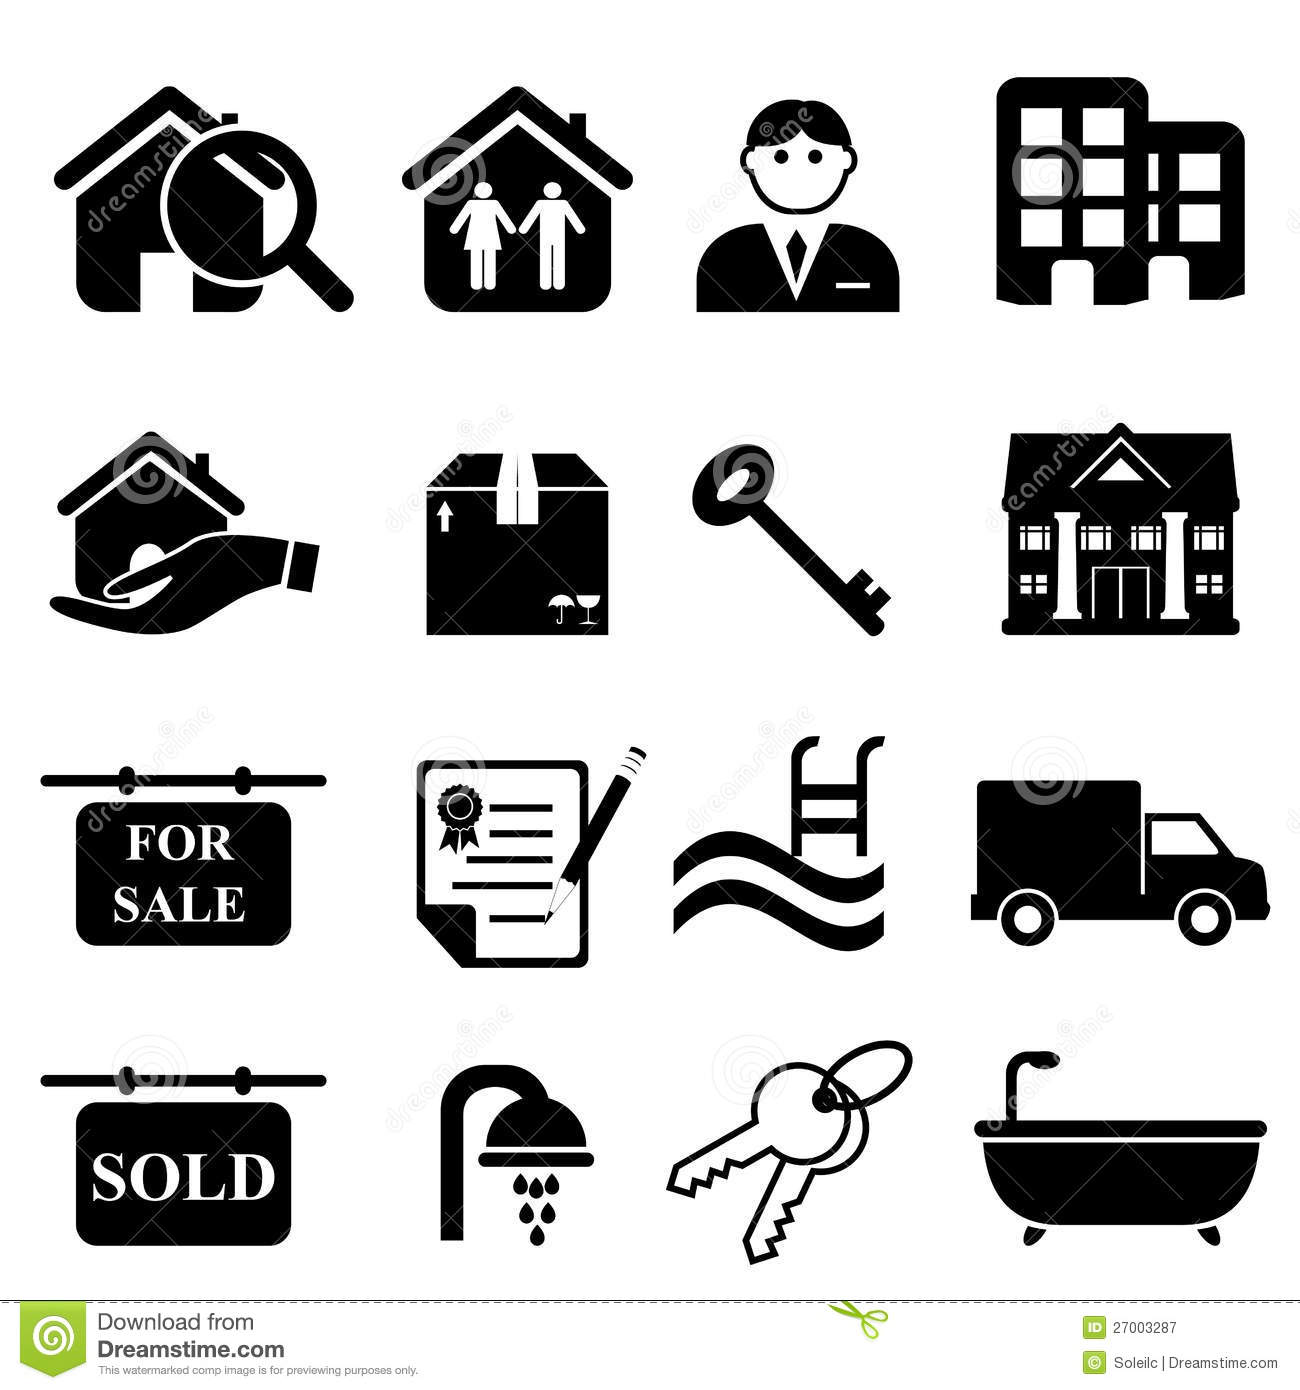 Real Estate Icons Royalty Free Stock Photography - Image: 27003287